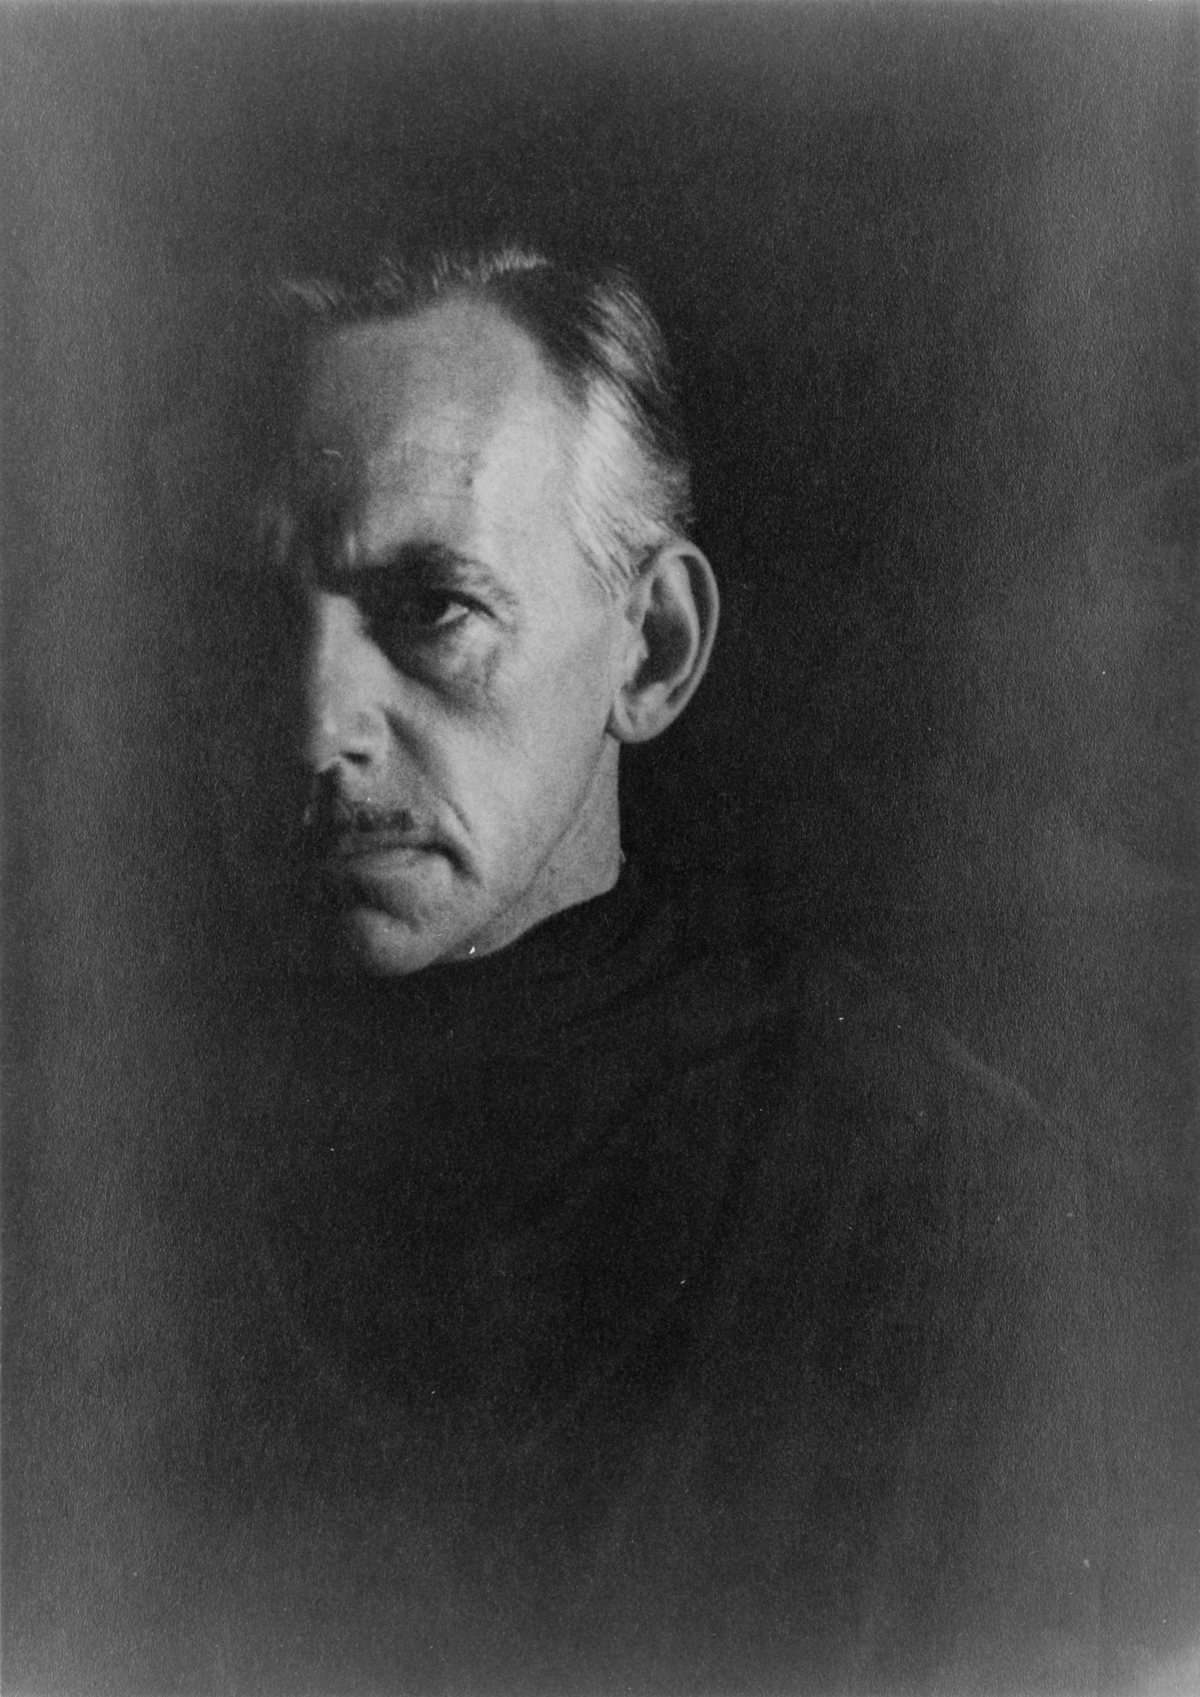 eugene gladstone o neil biography Eugene (gladstone) o'neill (october 16, 1888 - november 27, 1953) was an american playwright best known for explorations into the darker aspects of the human condition.